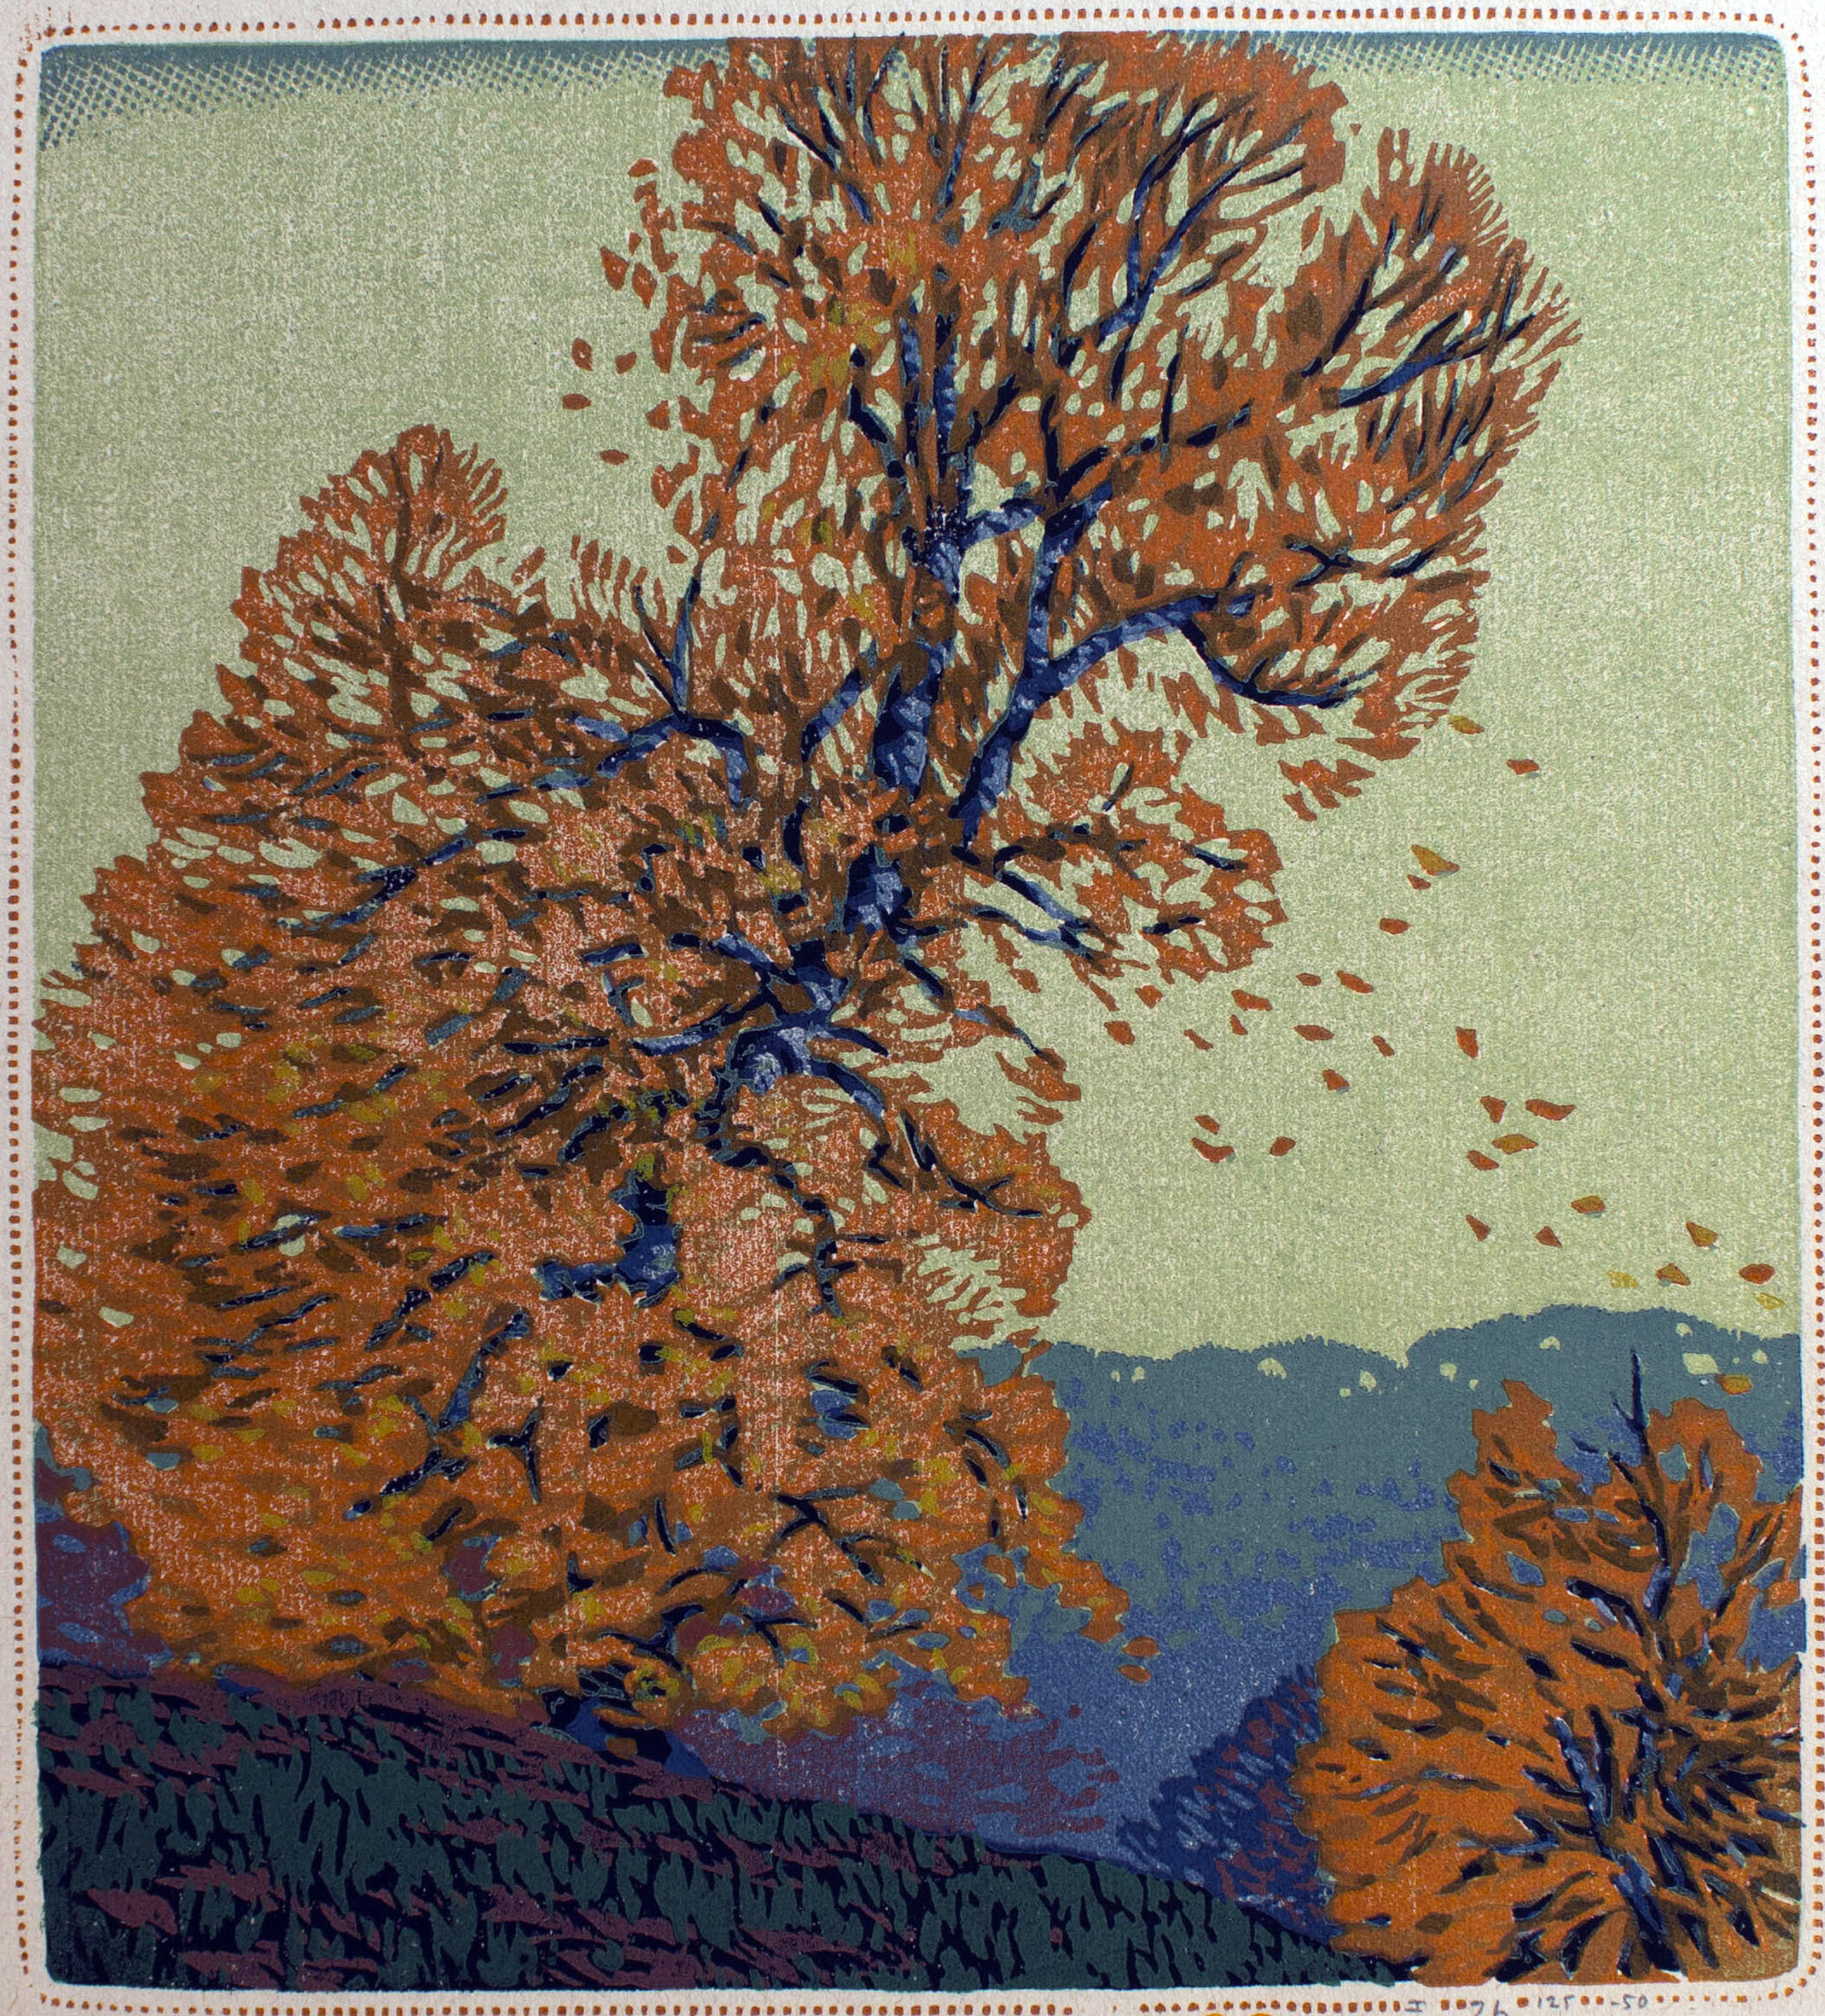 """Falling Leaves"" by Gustave Baumann"